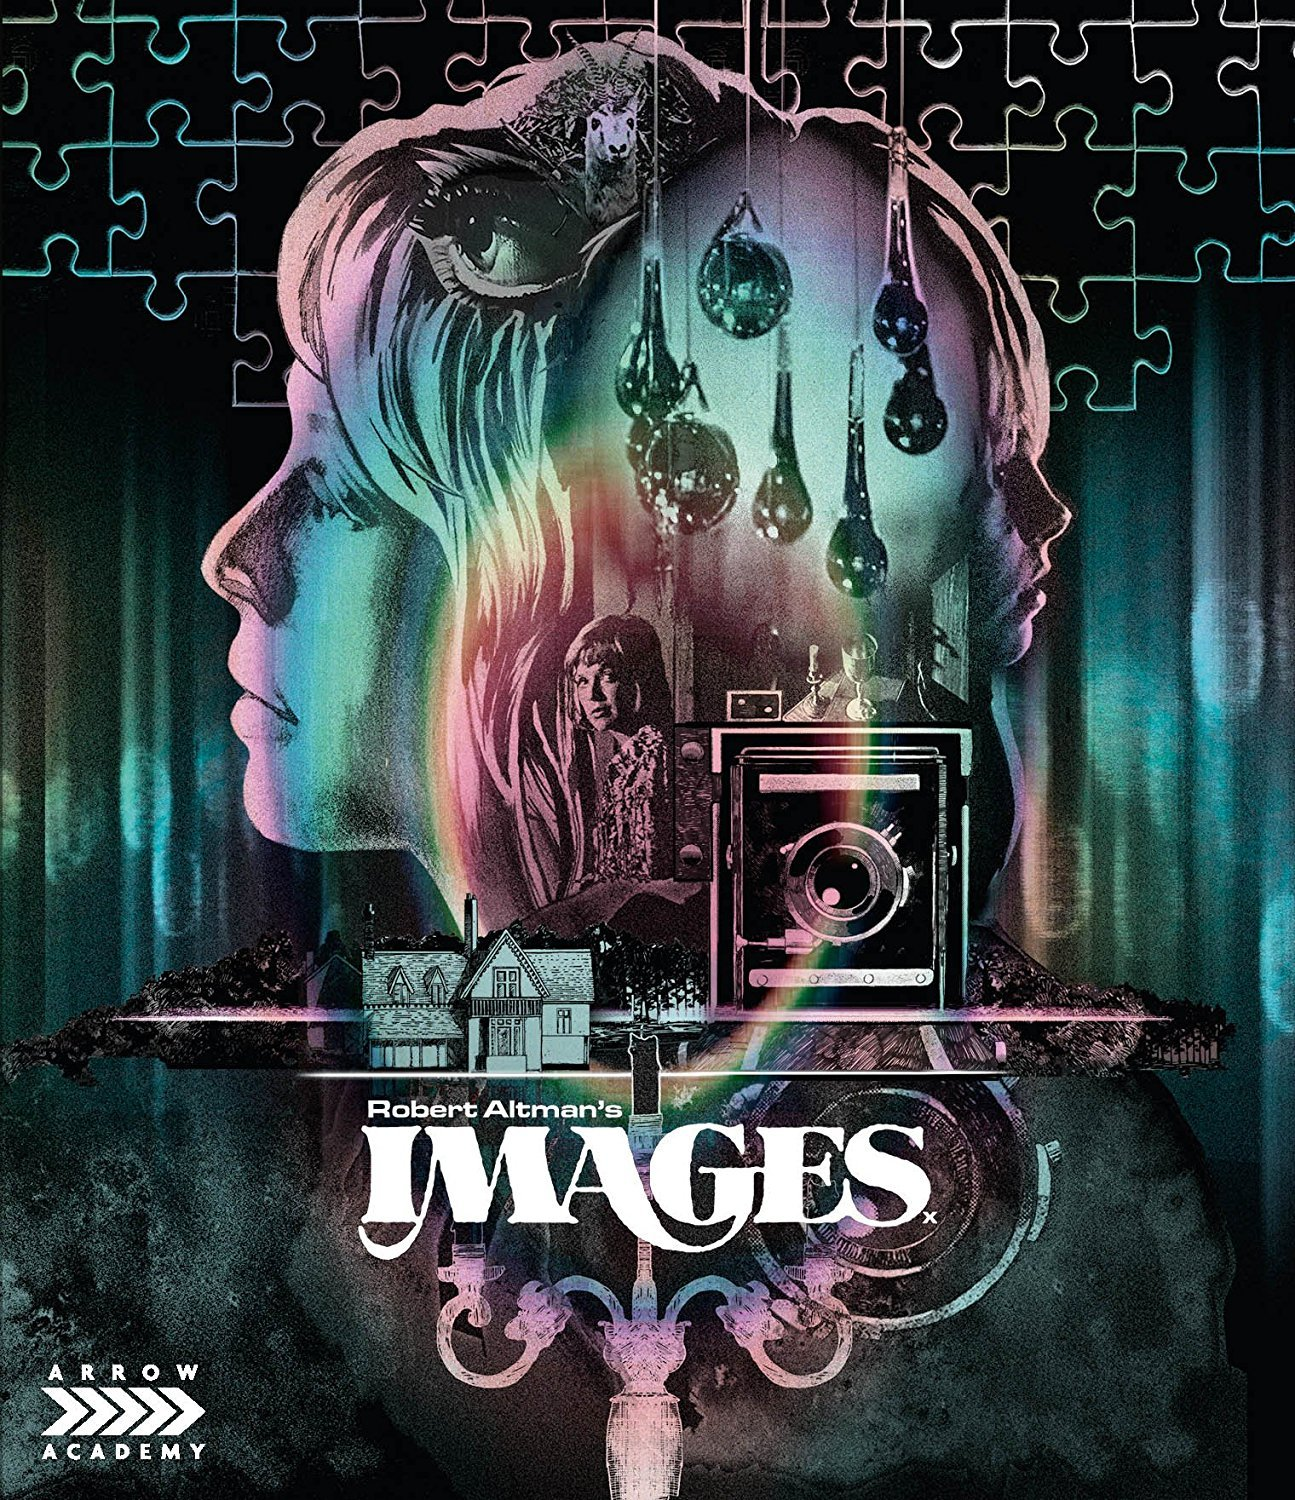 Blu-ray Review: Robert Altman's Images Joins the Arrow Academy